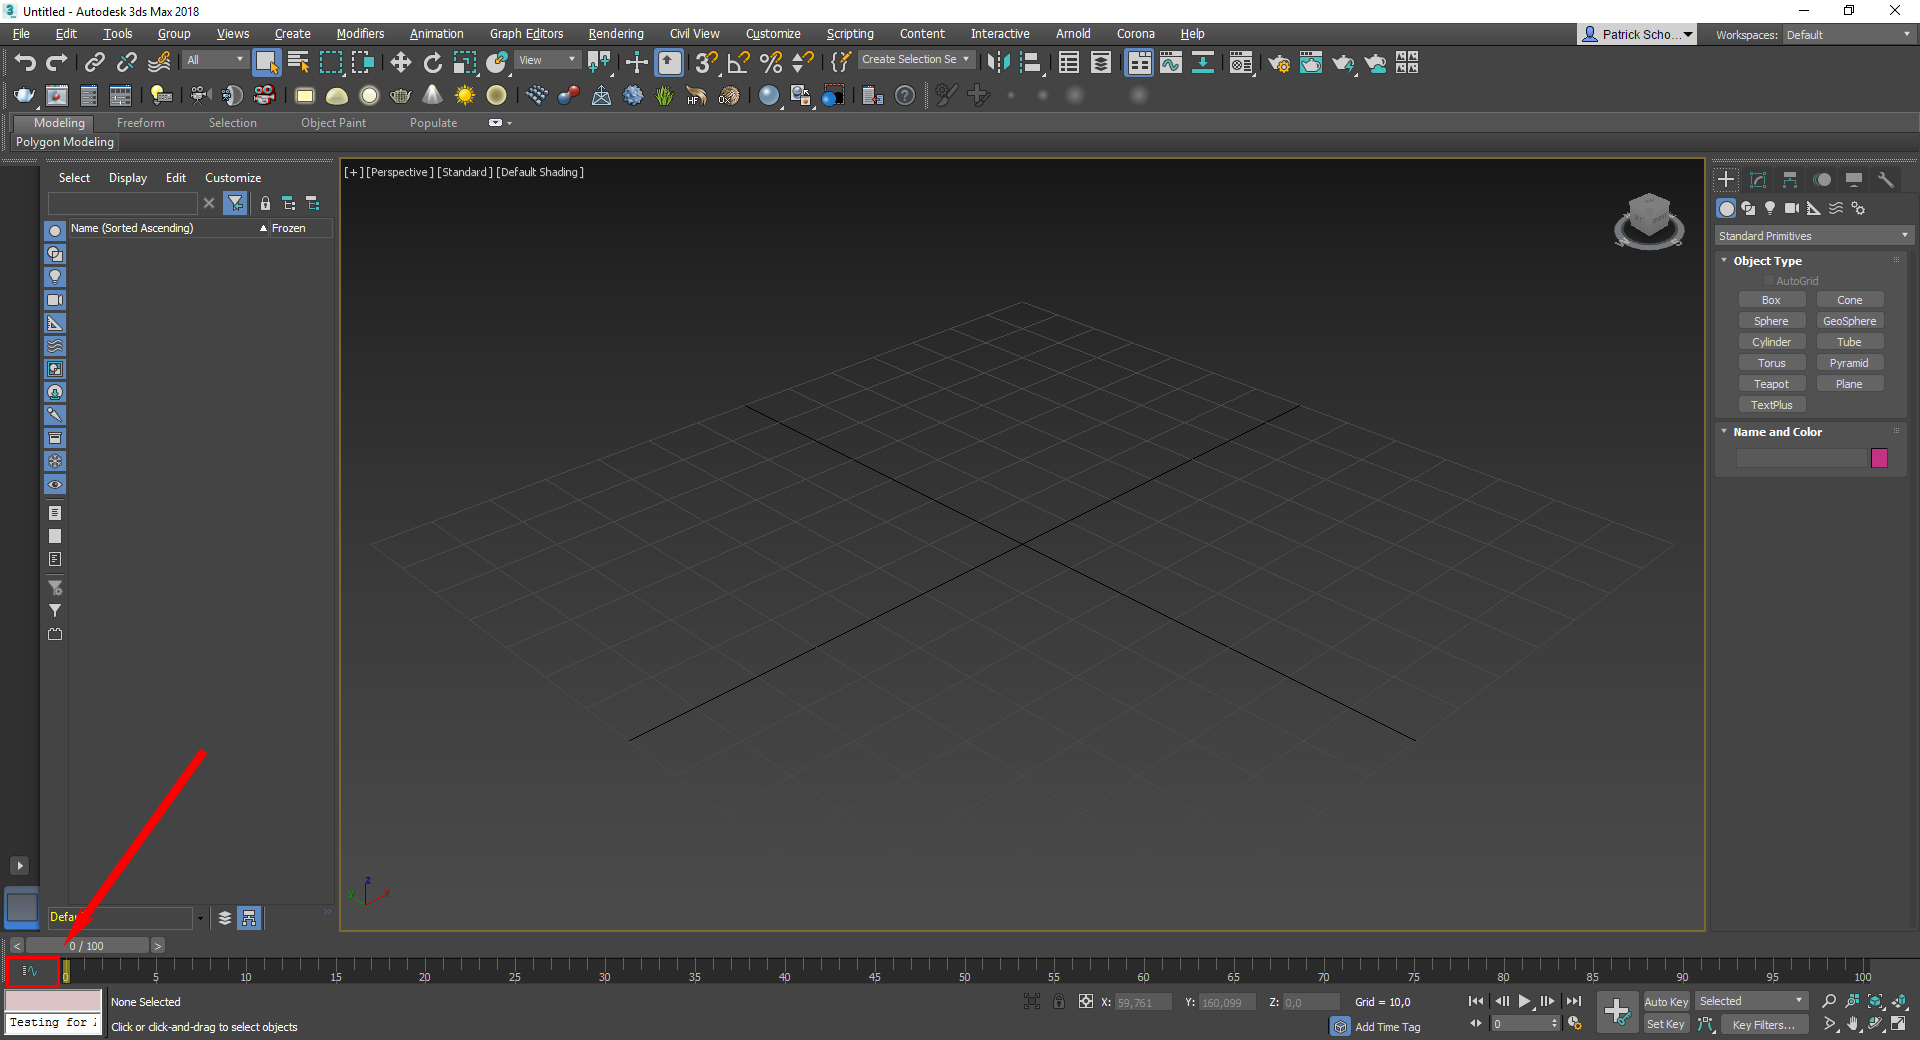 Mini Curve Editor does not open in 3ds Max 2018 | 3ds Max 2018